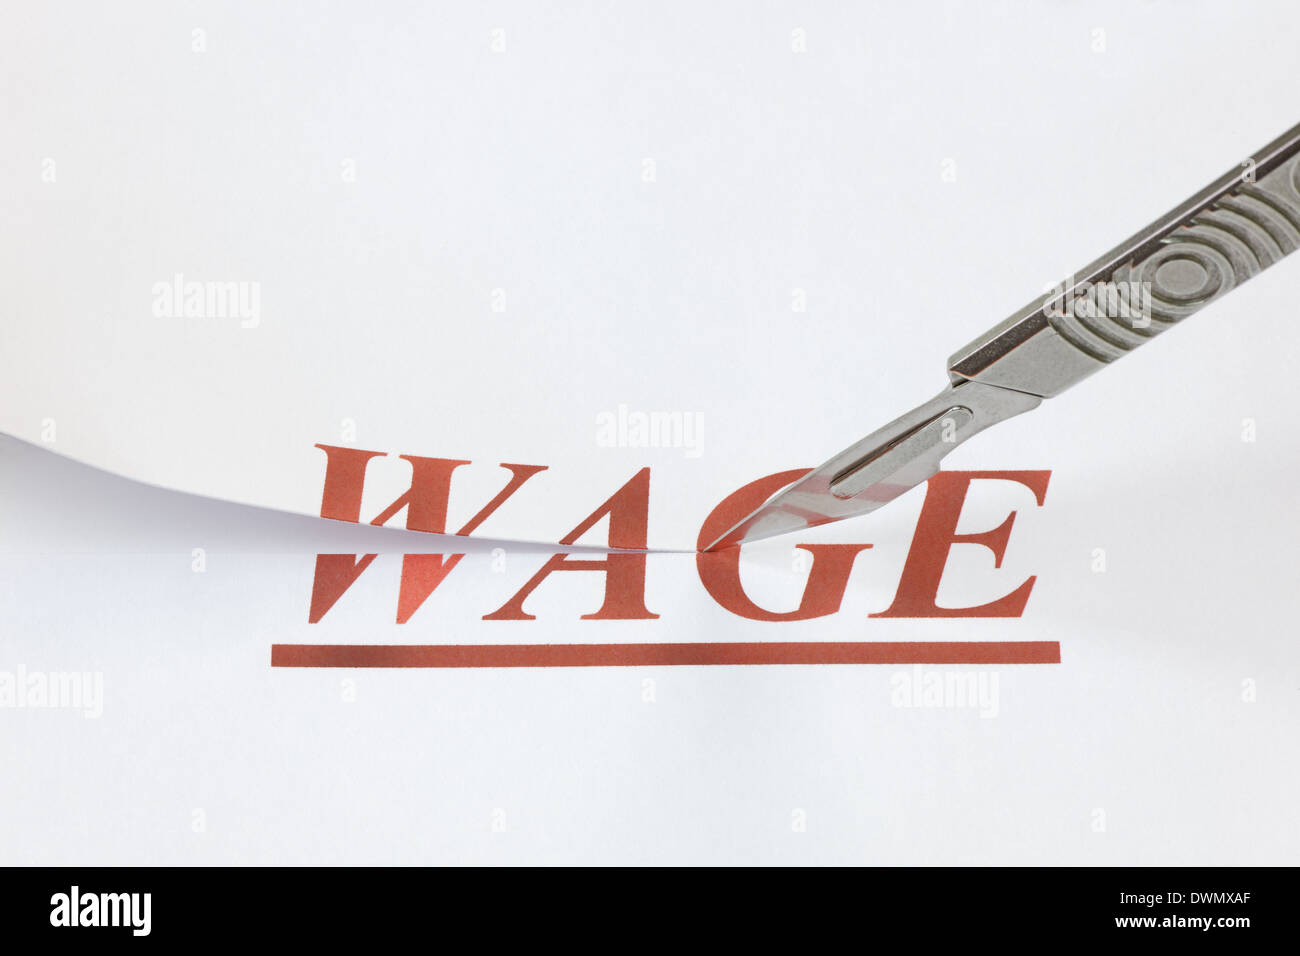 A scalpel cutting through the word Wage. Concept denoting a wage or salary cut, or reduced income because of a falling economy. - Stock Image